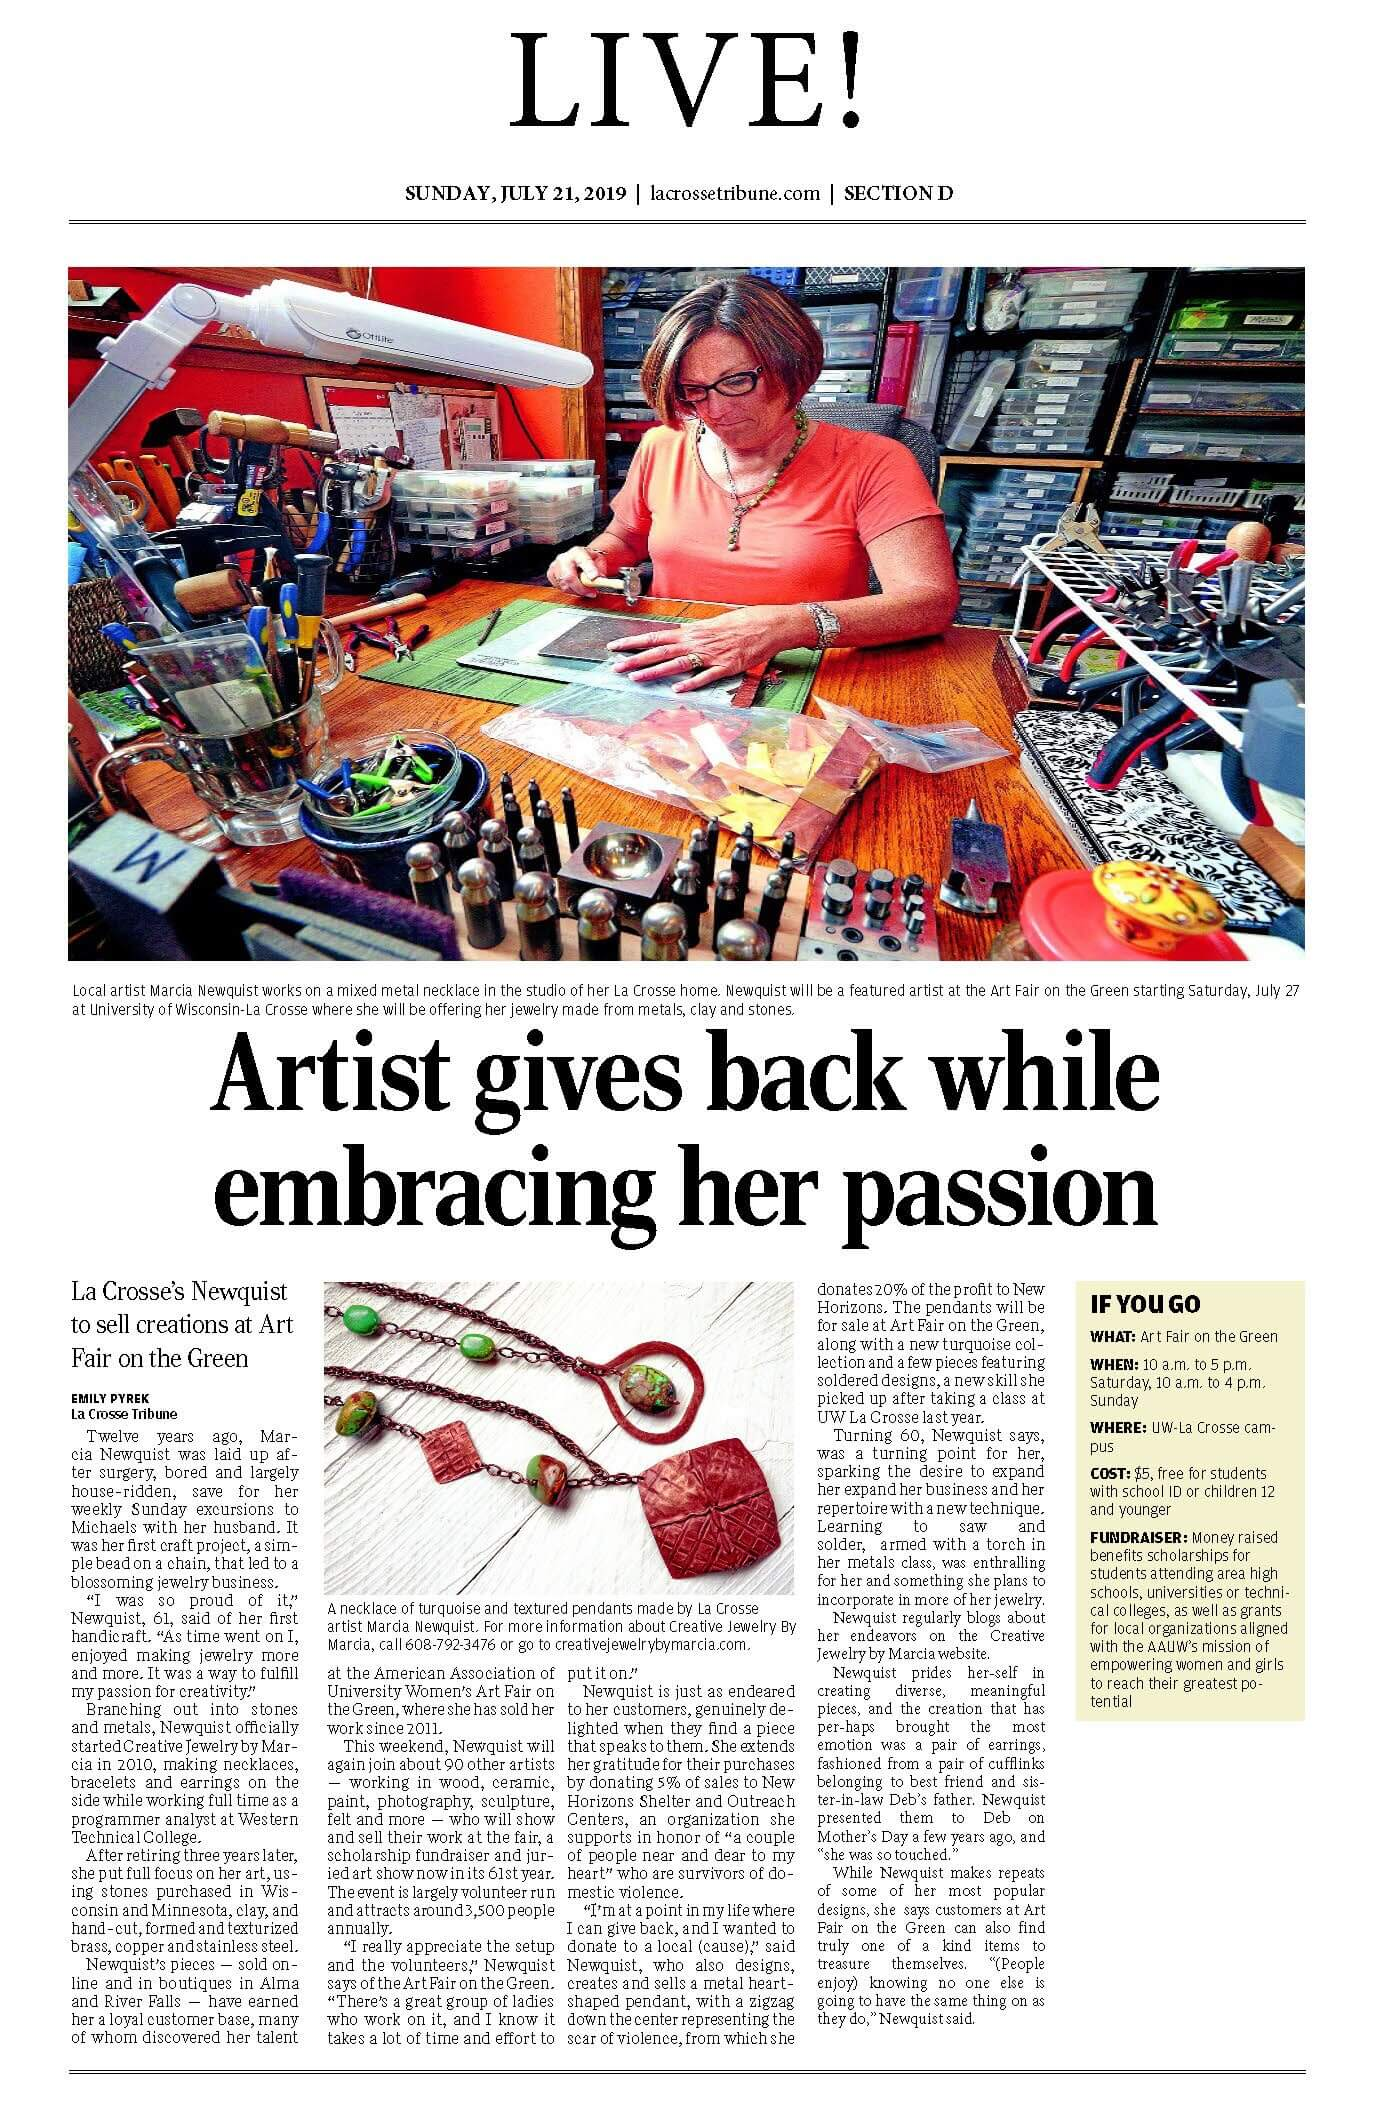 Article in La Crosse Tribune (Sunday Edition - Newspaper for La Crosse, WI) Creative Jewelry by Marcia (Marcia Newquist) was the Featured Artist for 2019 Art Fair On The Green which is an annual event with over 80 artists.